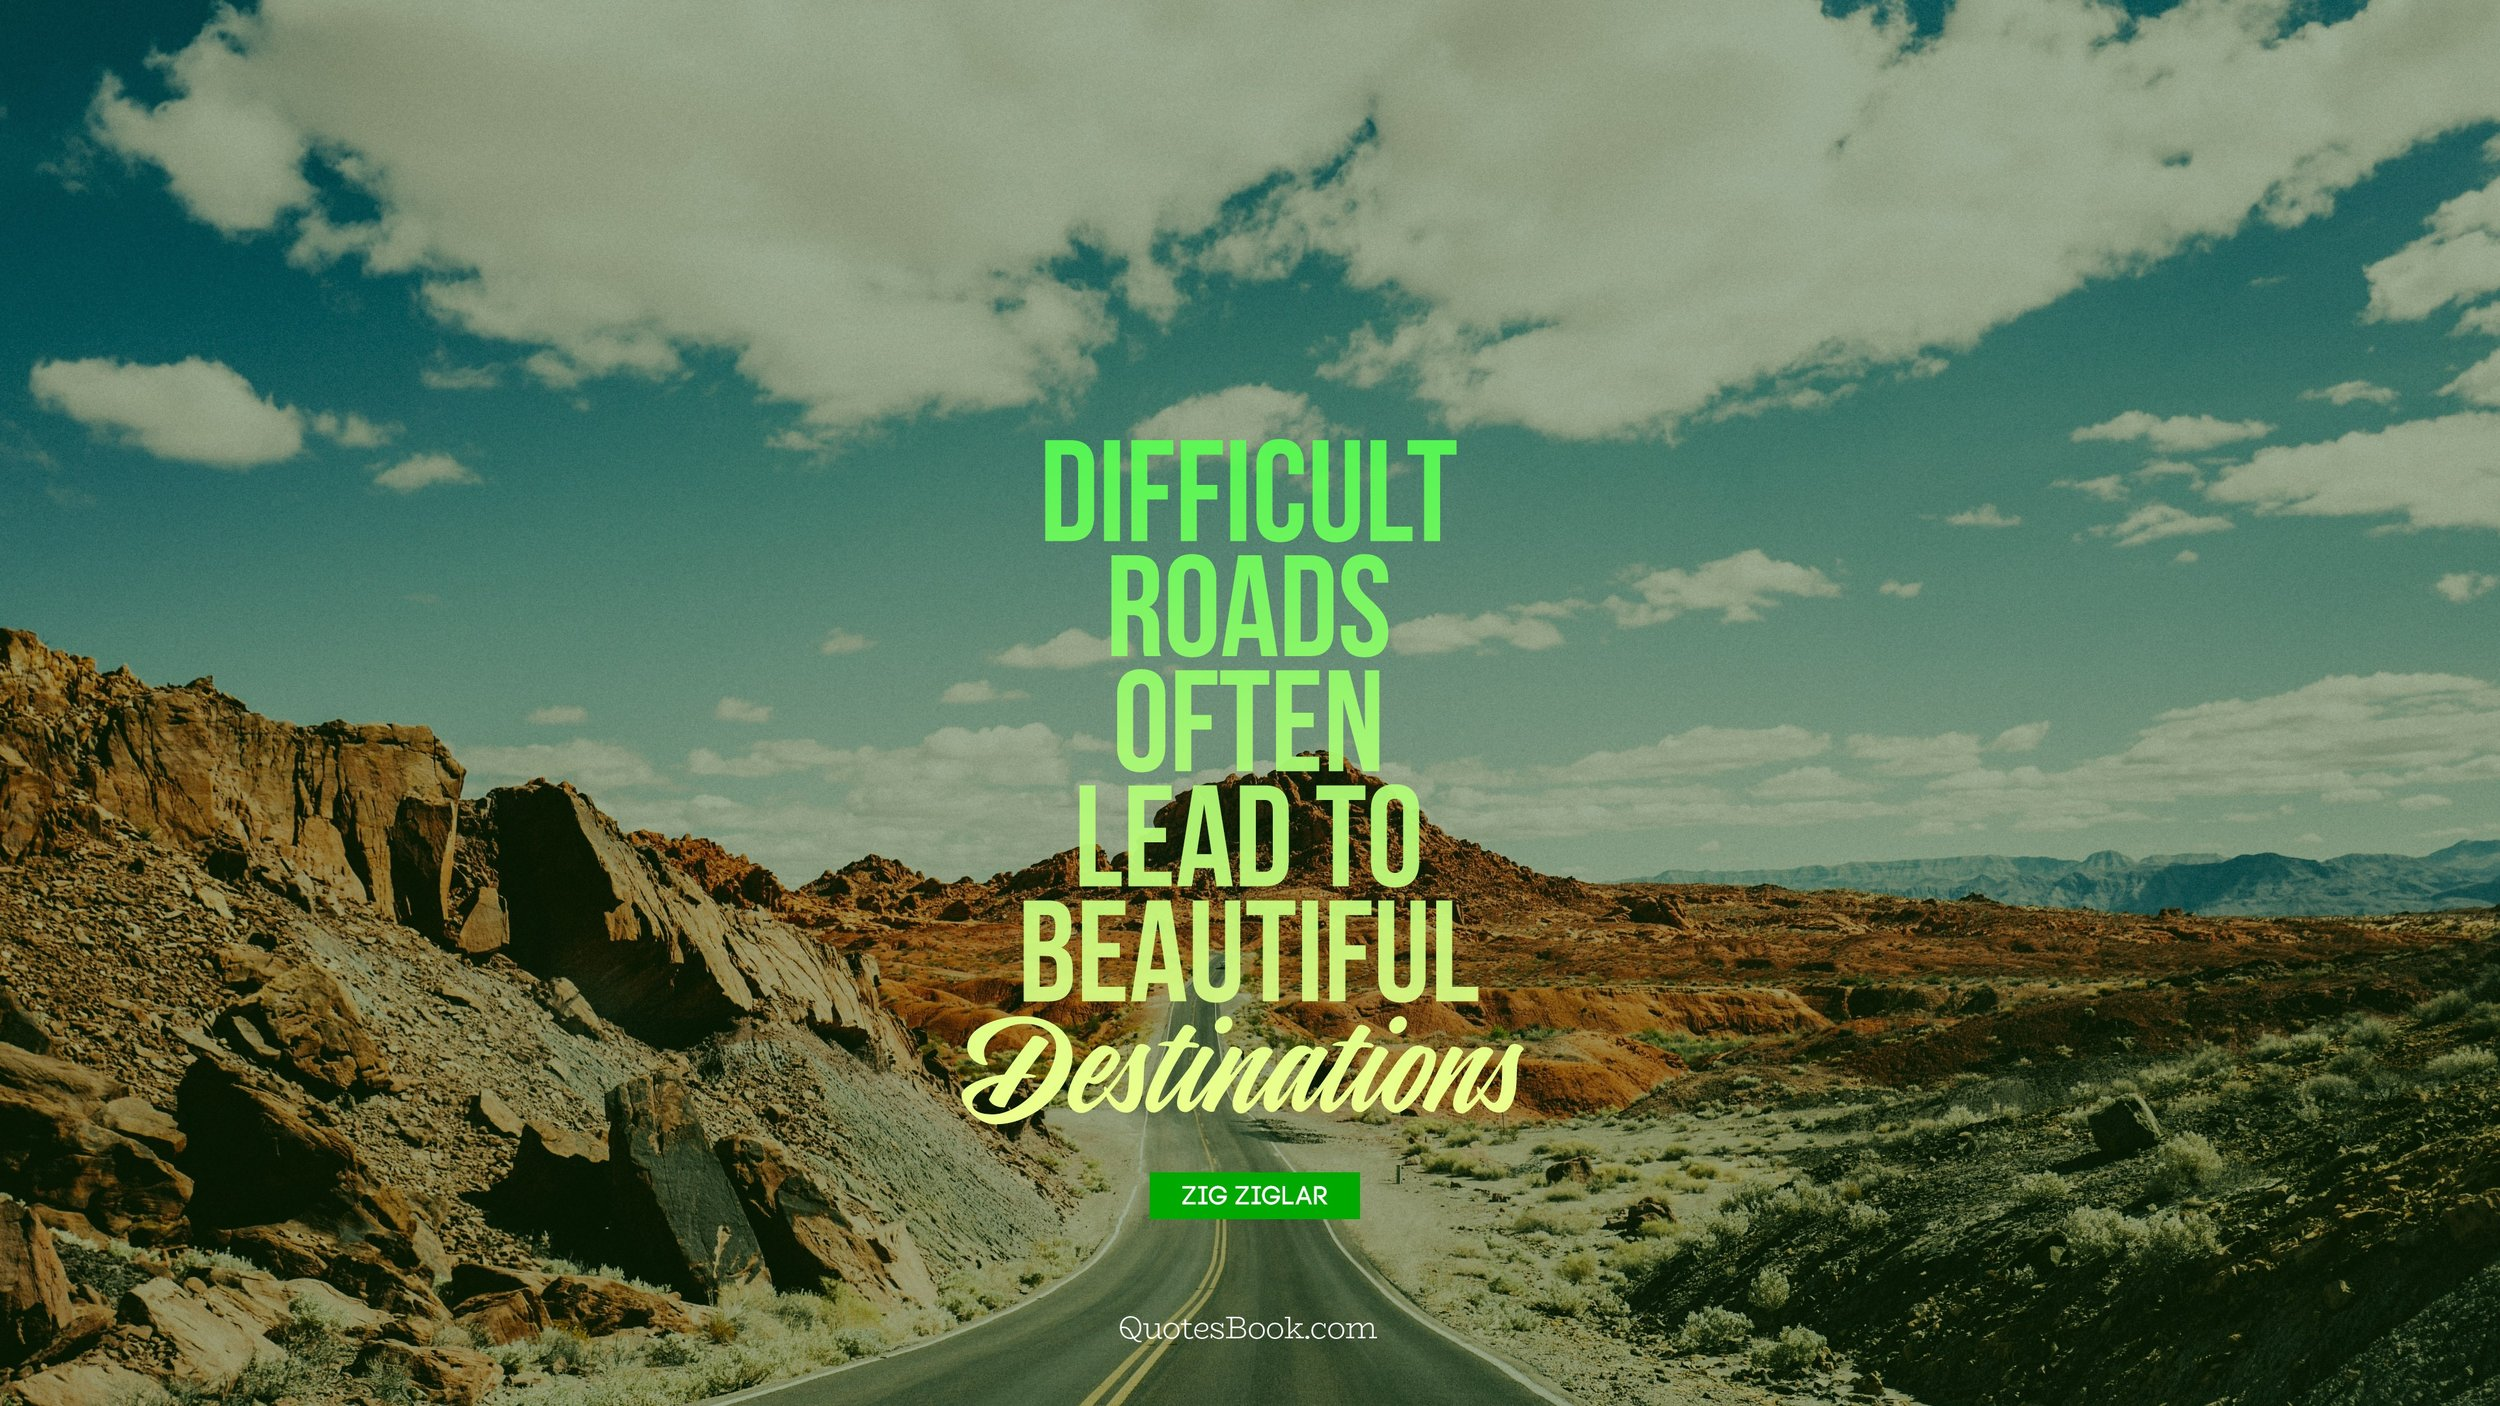 difficult-roads-often-lead-to-beautiful-destinations-3840x2160-1717.jpg